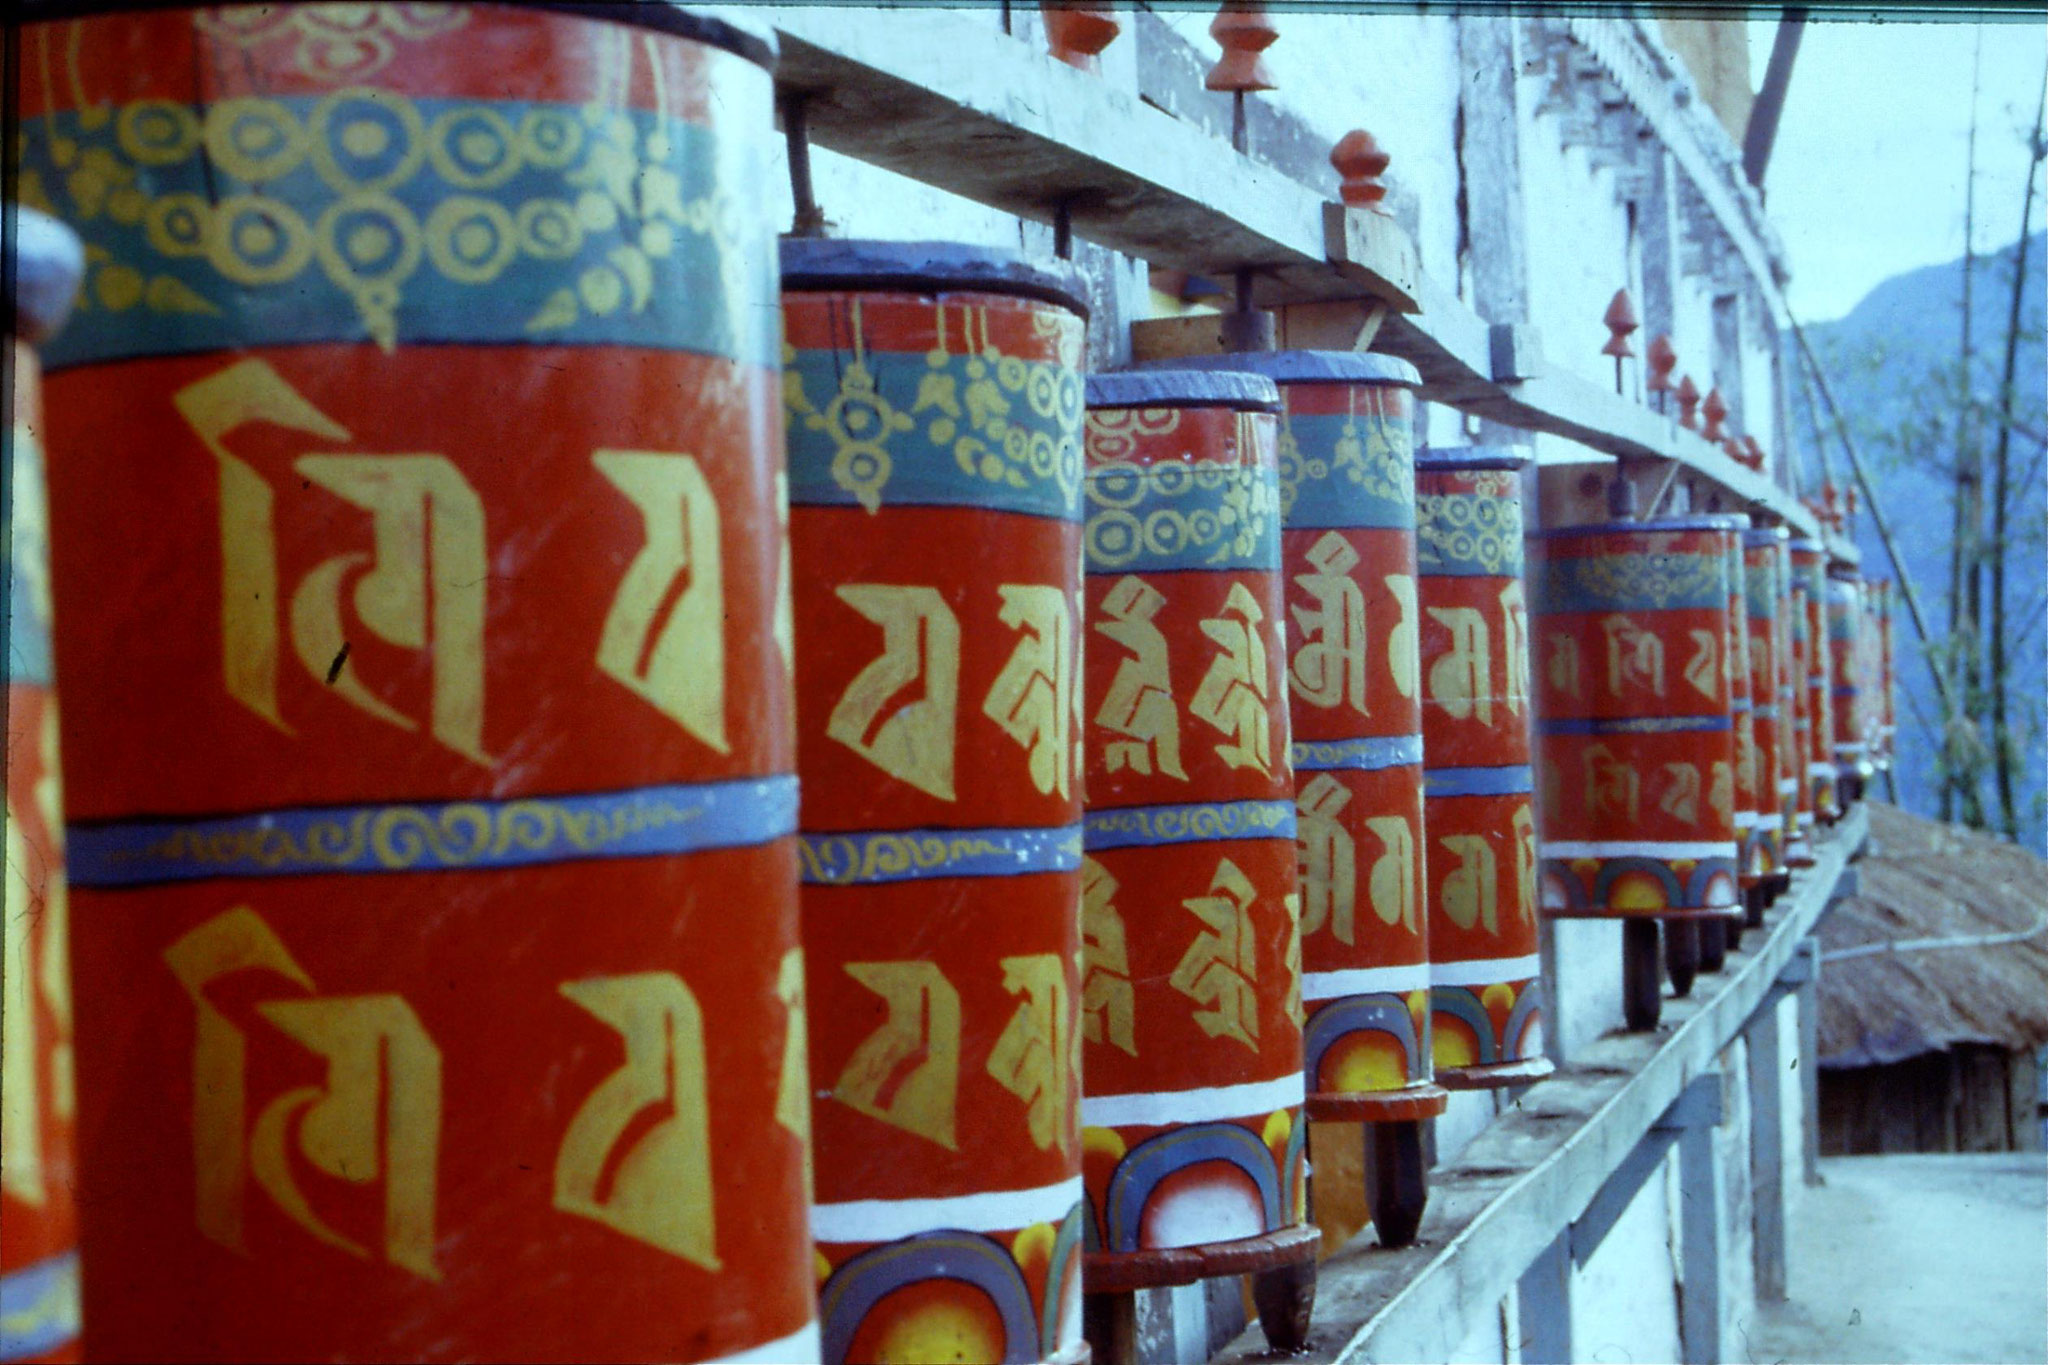 115/37: 29/4/1990 Tashiding - prayer wheels